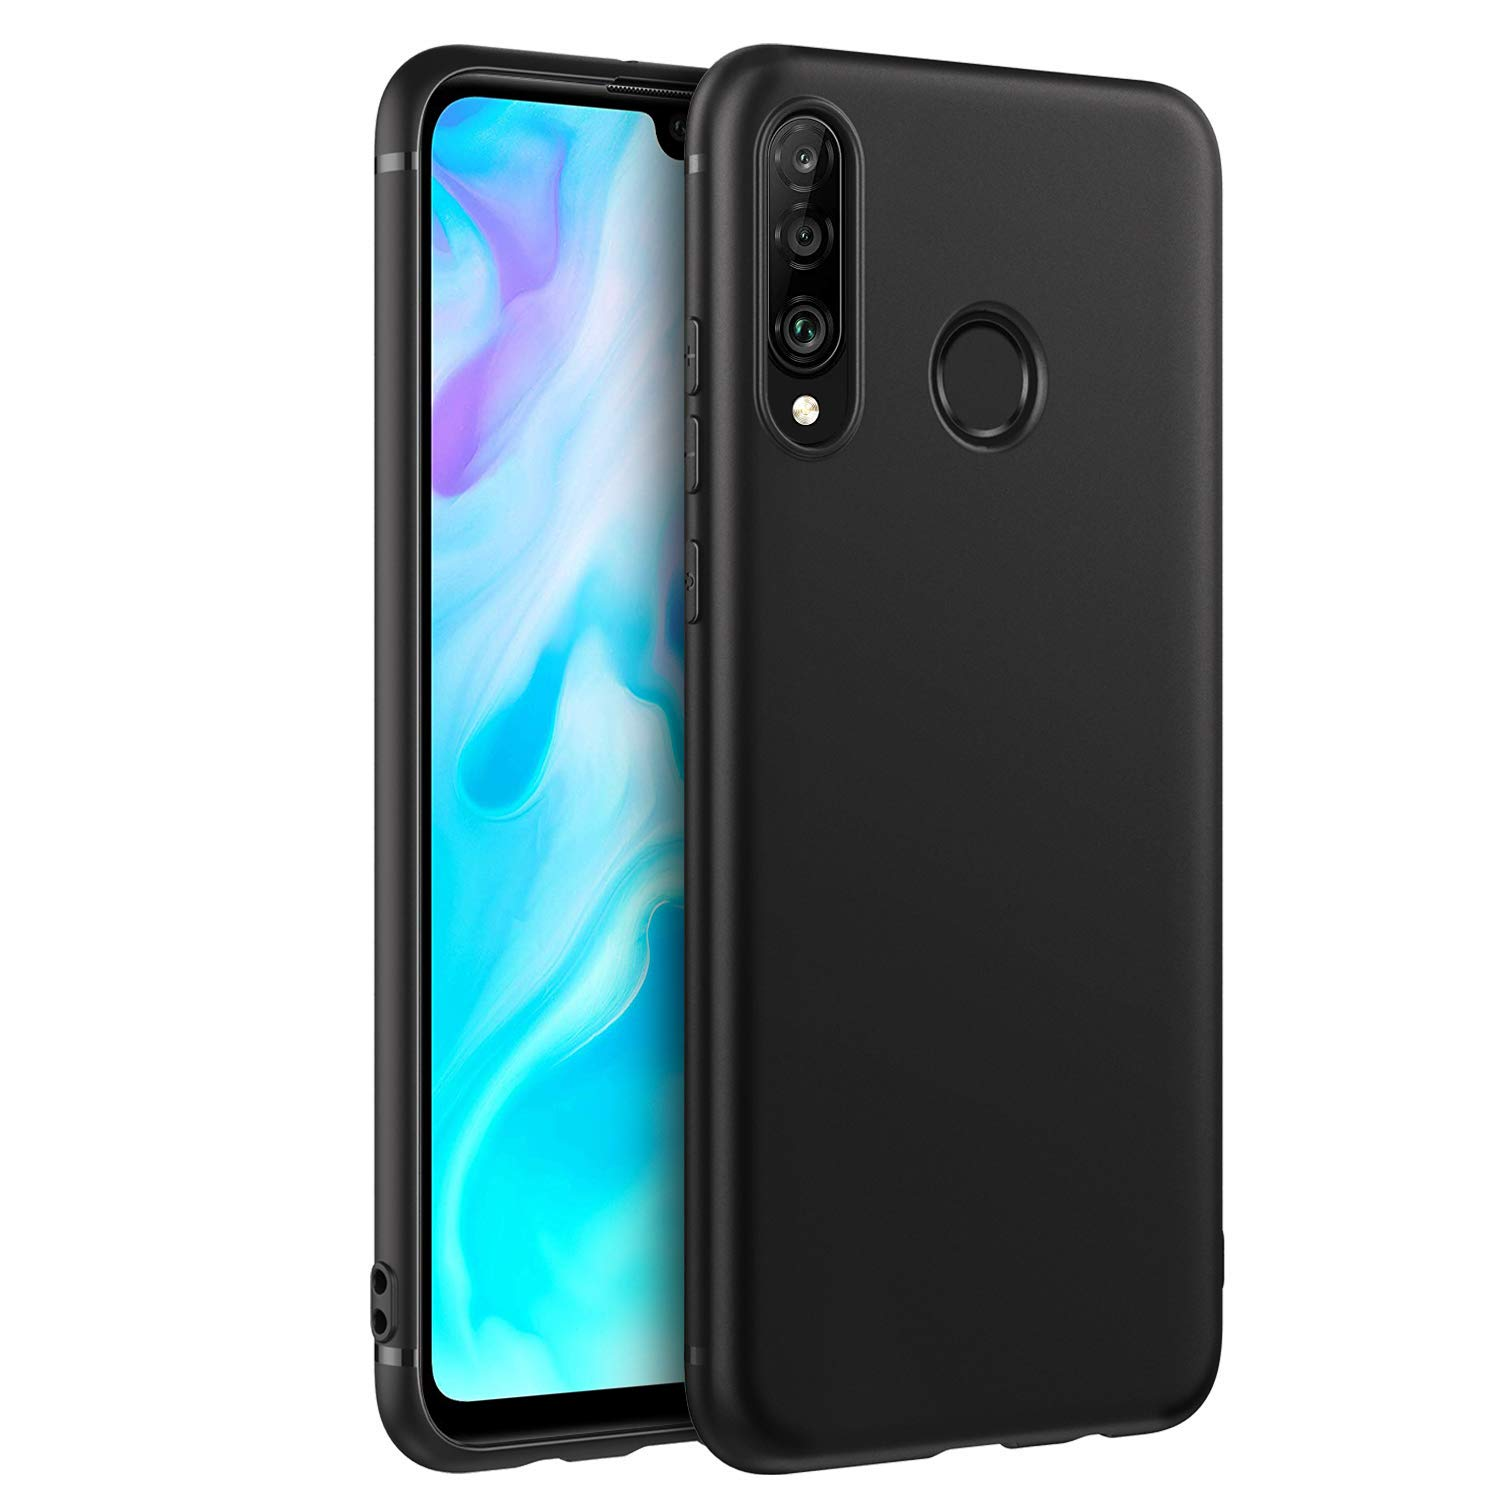 EasyAcc Case for Huawei P30 Lite, Matte Black TPU Slim Basic Phone Case Finish Profile Soft Ultra Thin Fit Back Protective Cover Compatible with ...